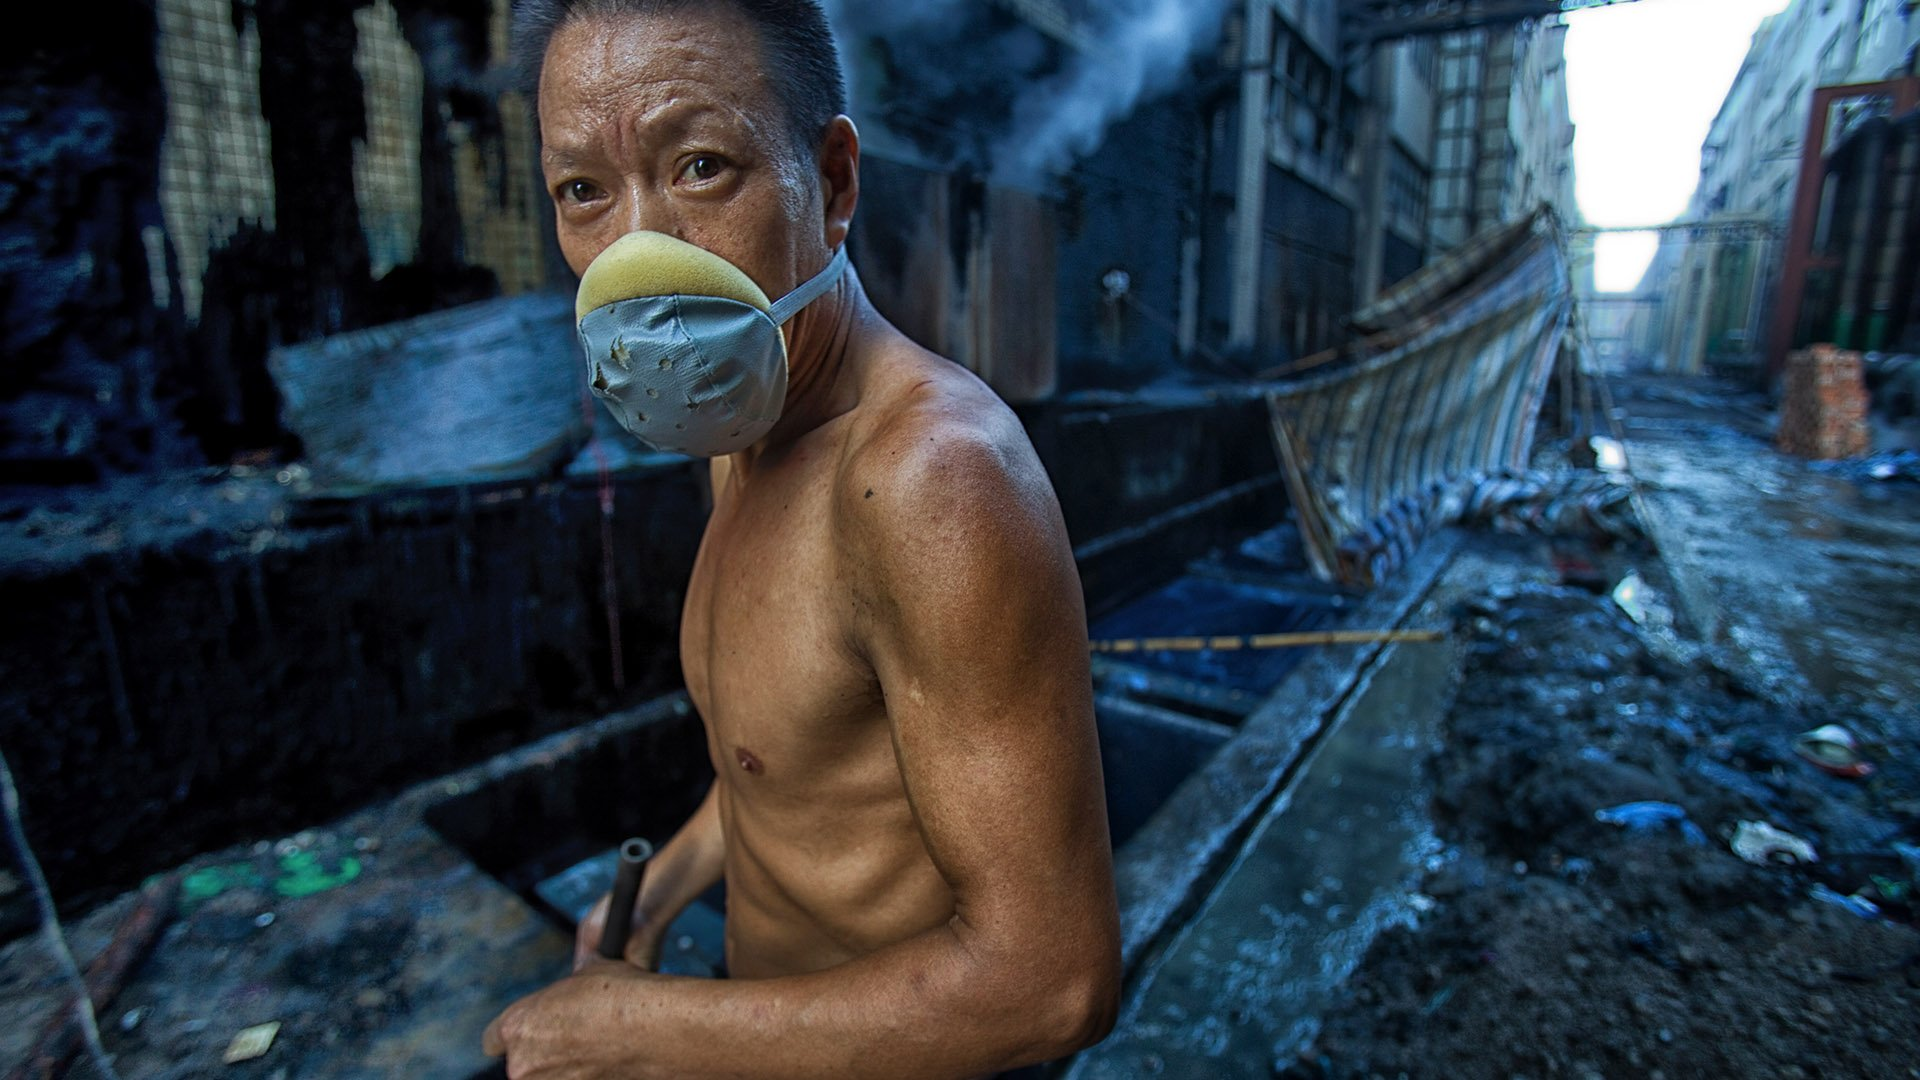 http://spatulamedia.ca/wp-content/uploads/2019/05/china-worker.jpg